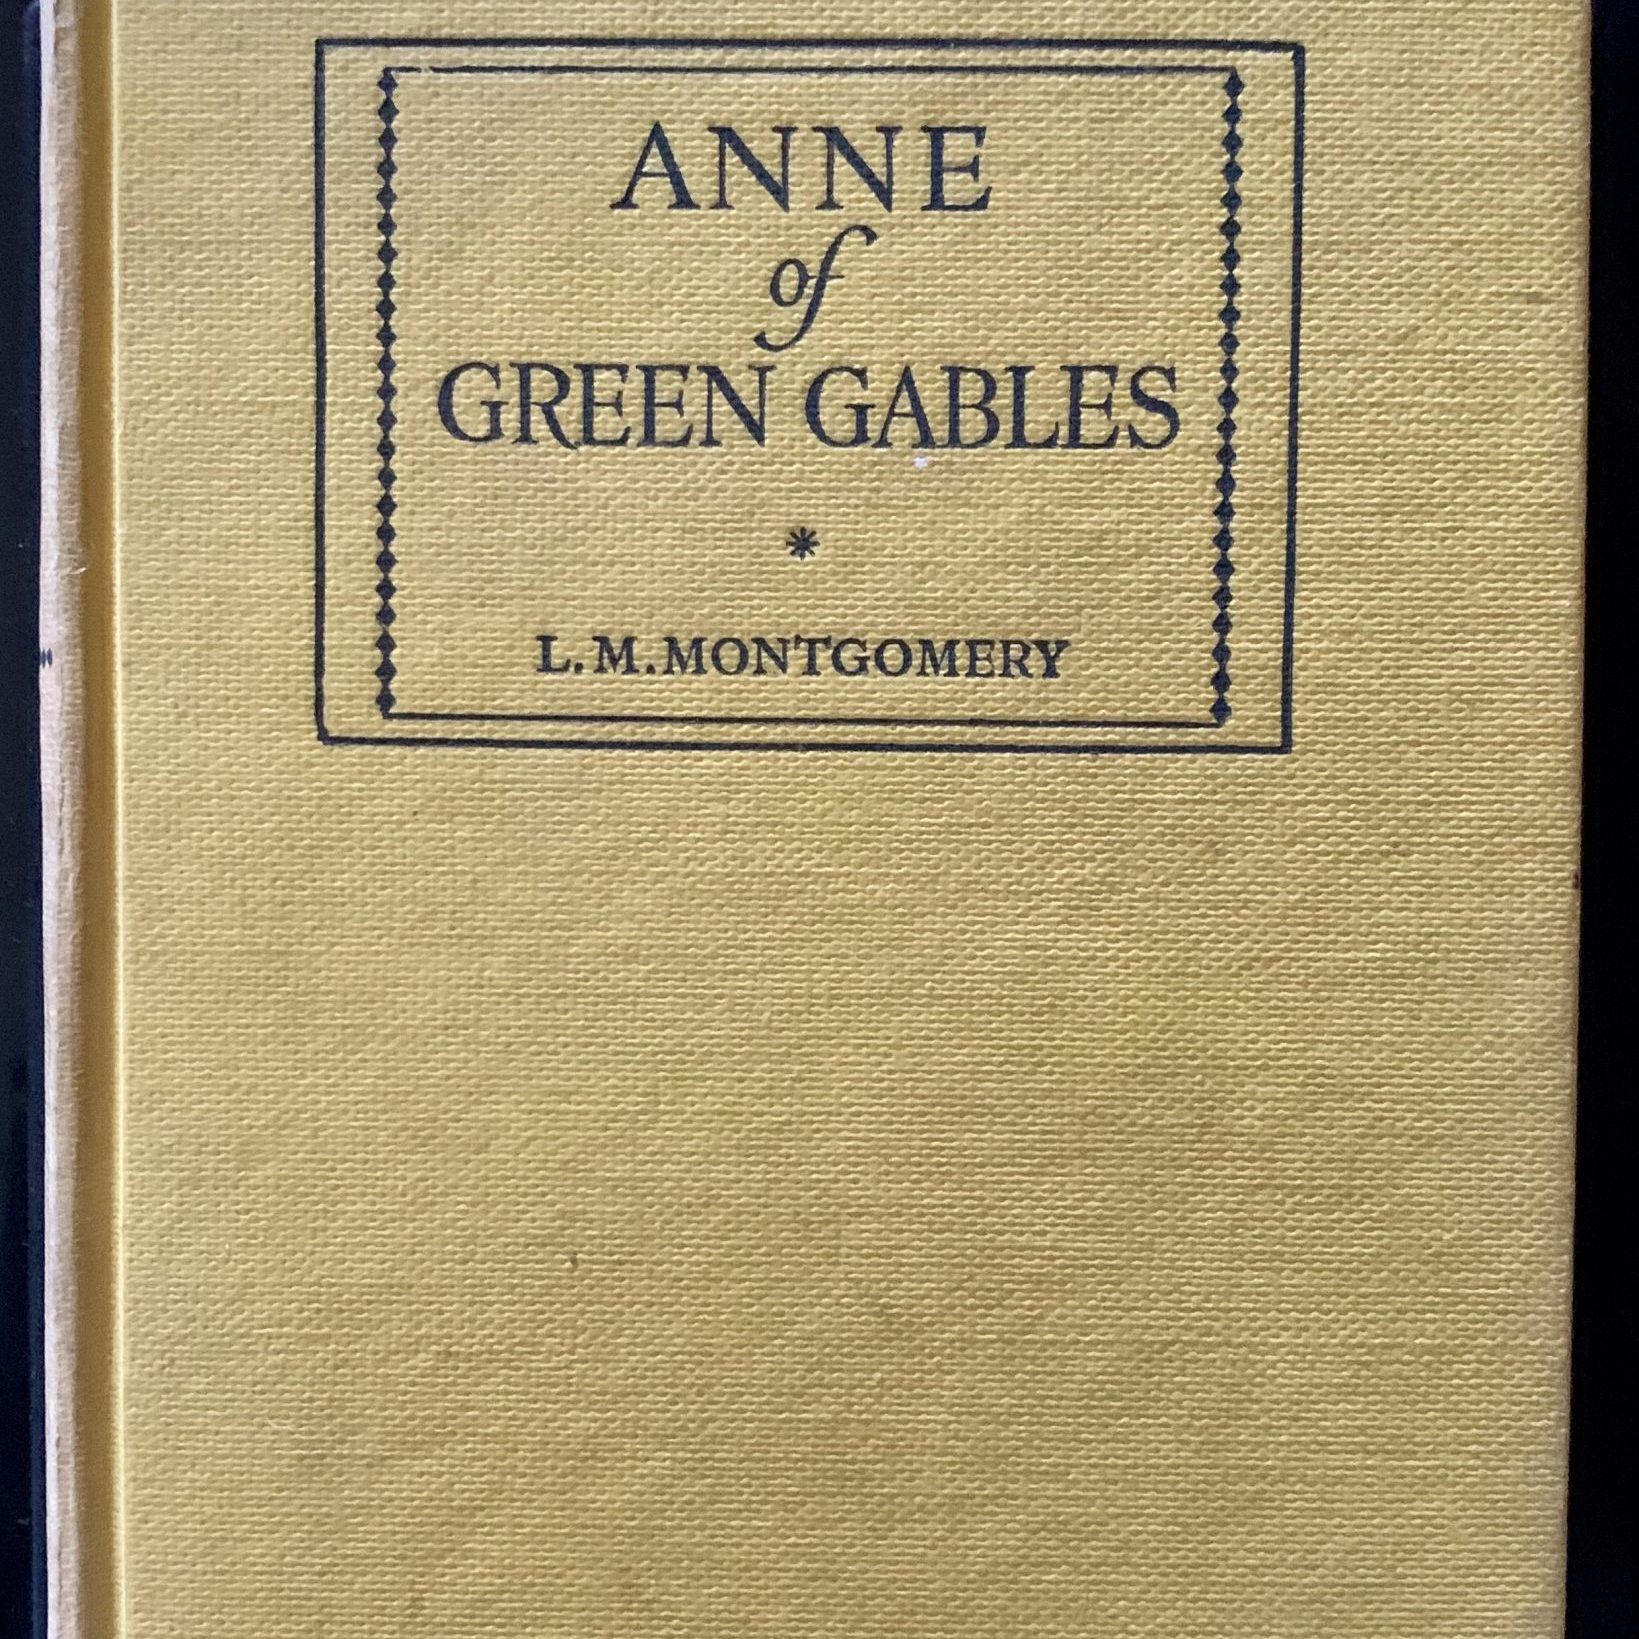 Anne of Green Gables - a favourite book